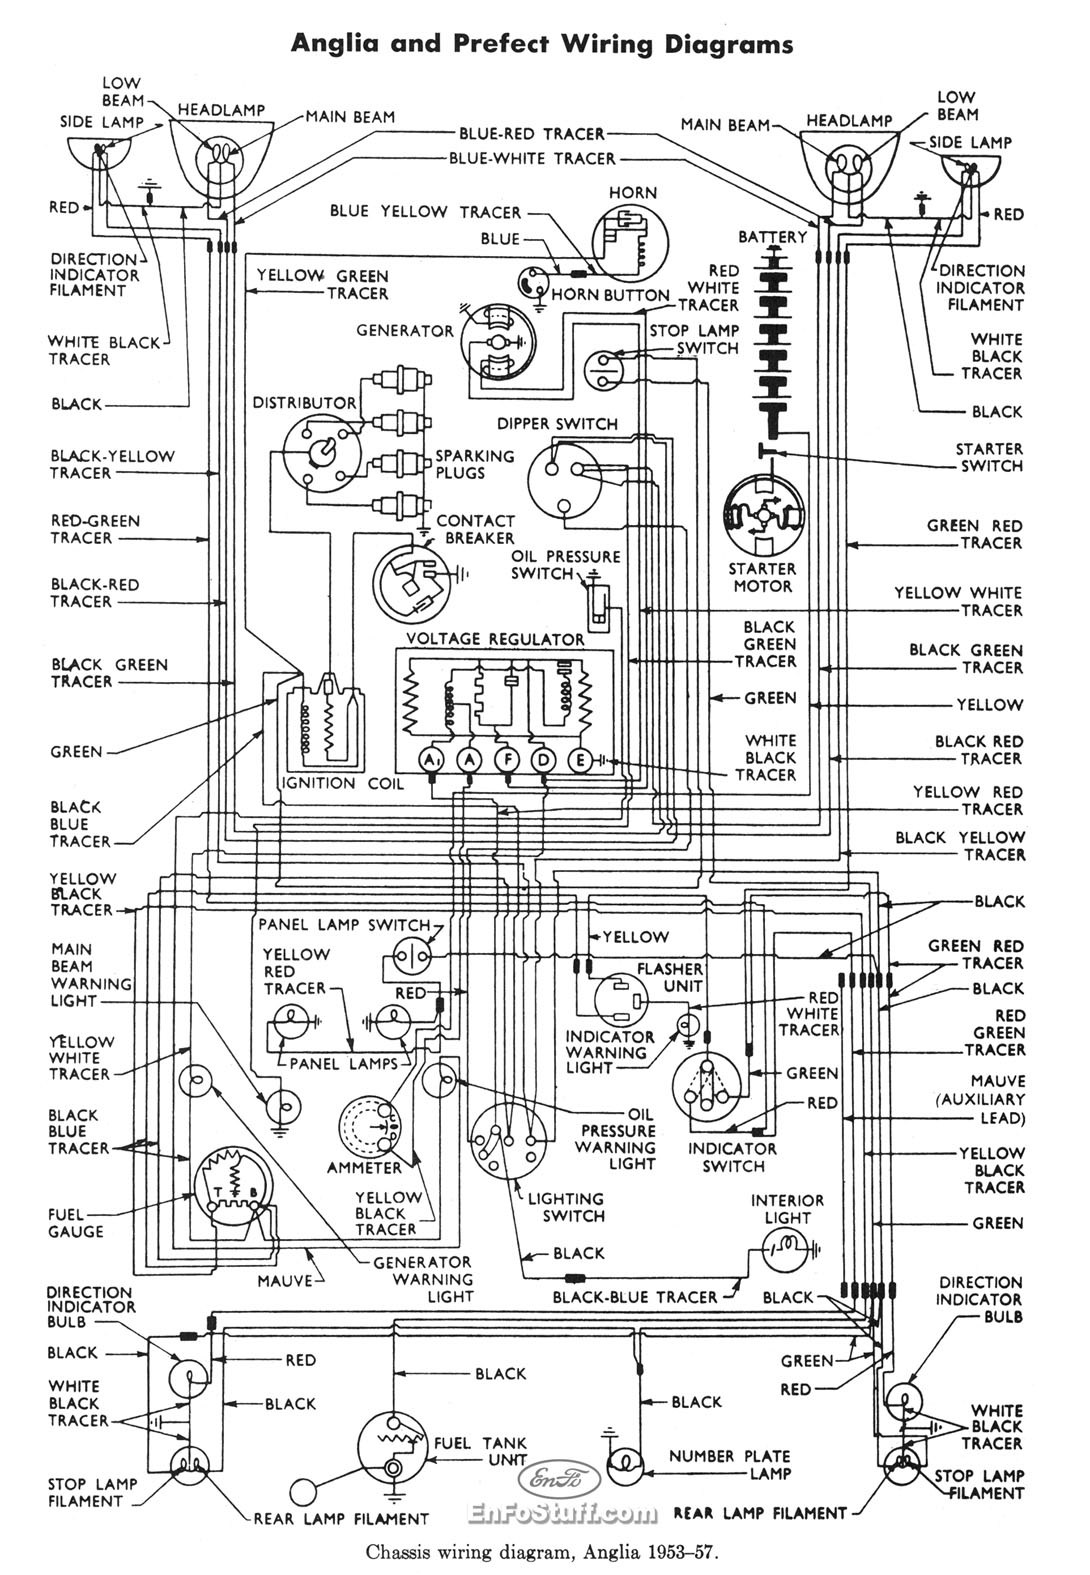 1997 Ford F800 Wiring Diagrams Wiring Diagrams Register Register Miglioribanche It